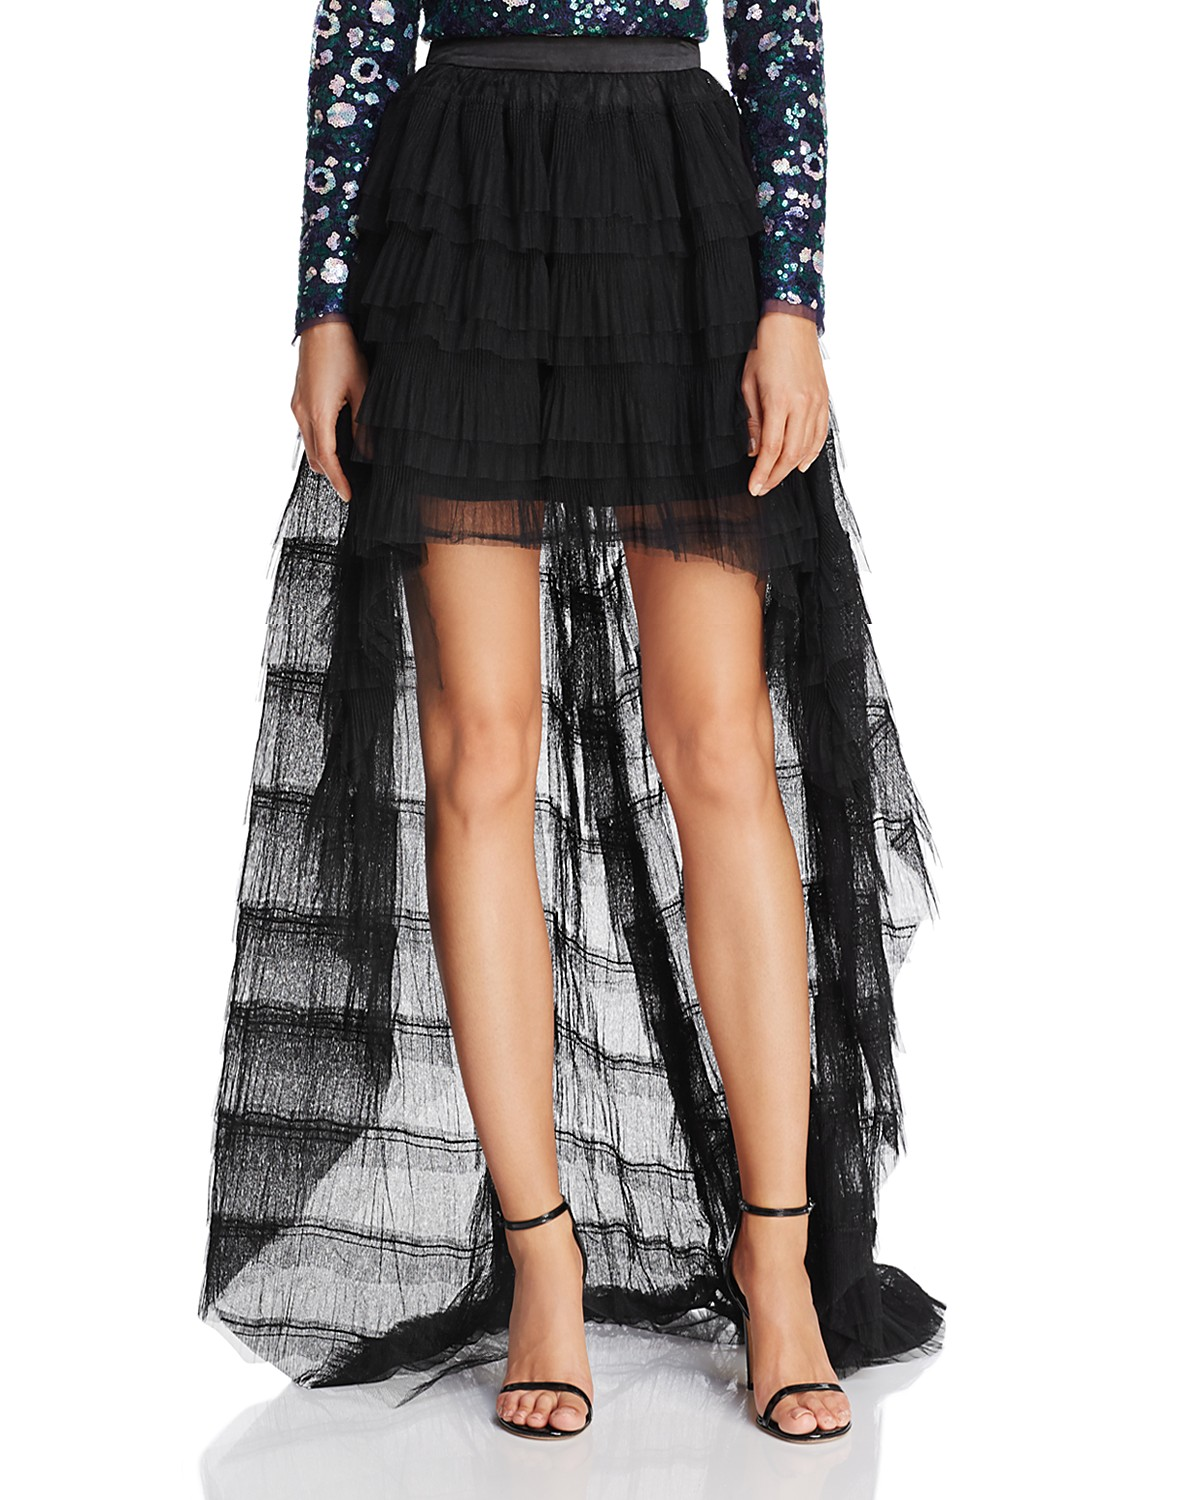 the greatest showman zendaya x aqua capsule collection high low tulle skirt